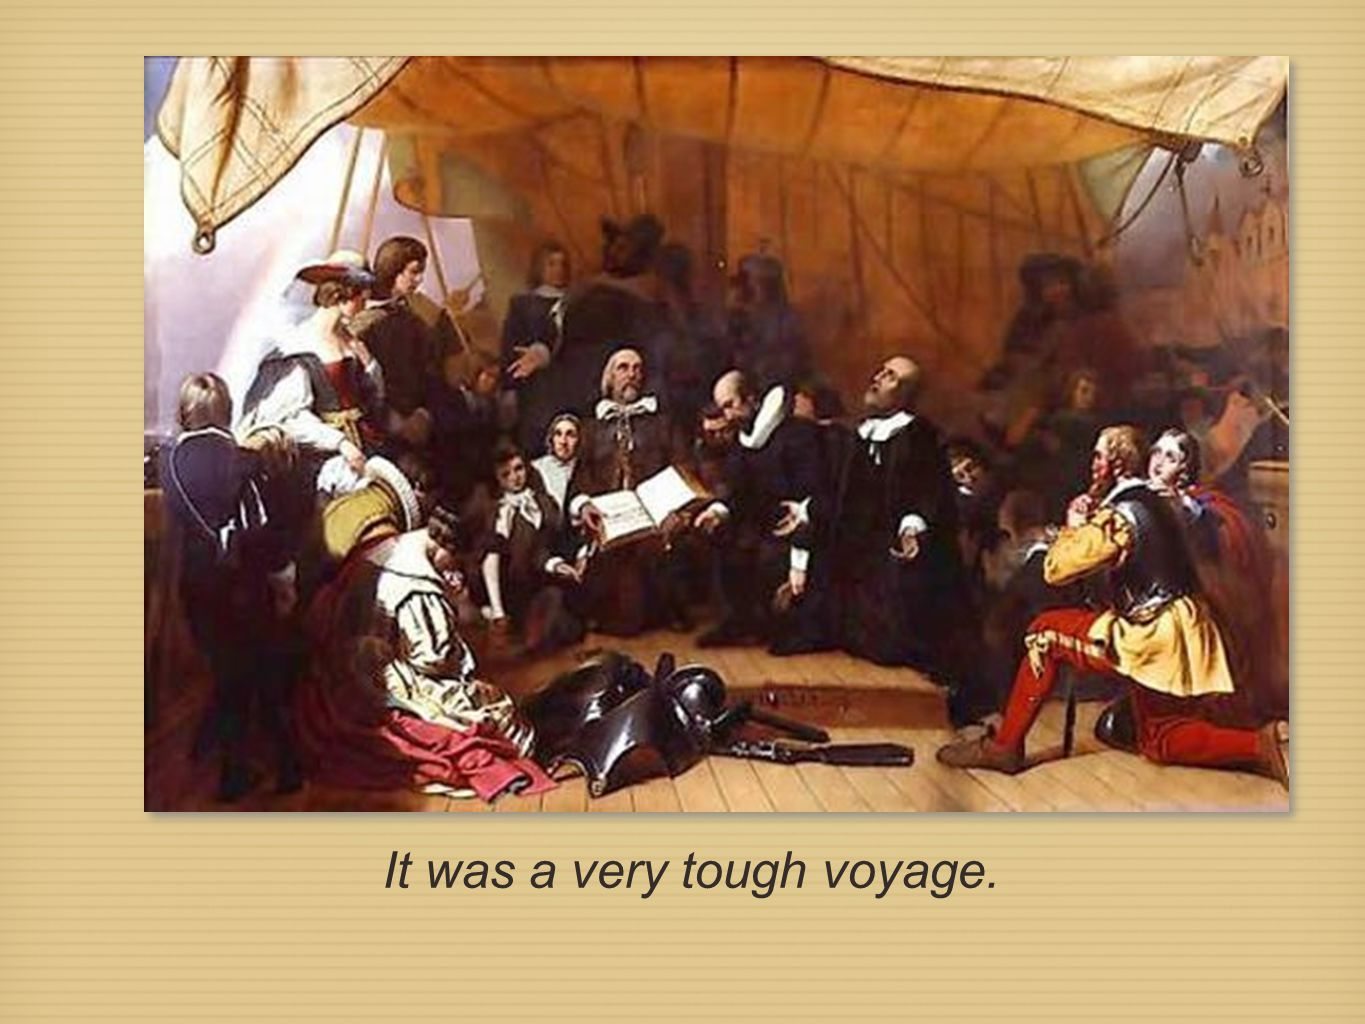 It was a very tough voyage.